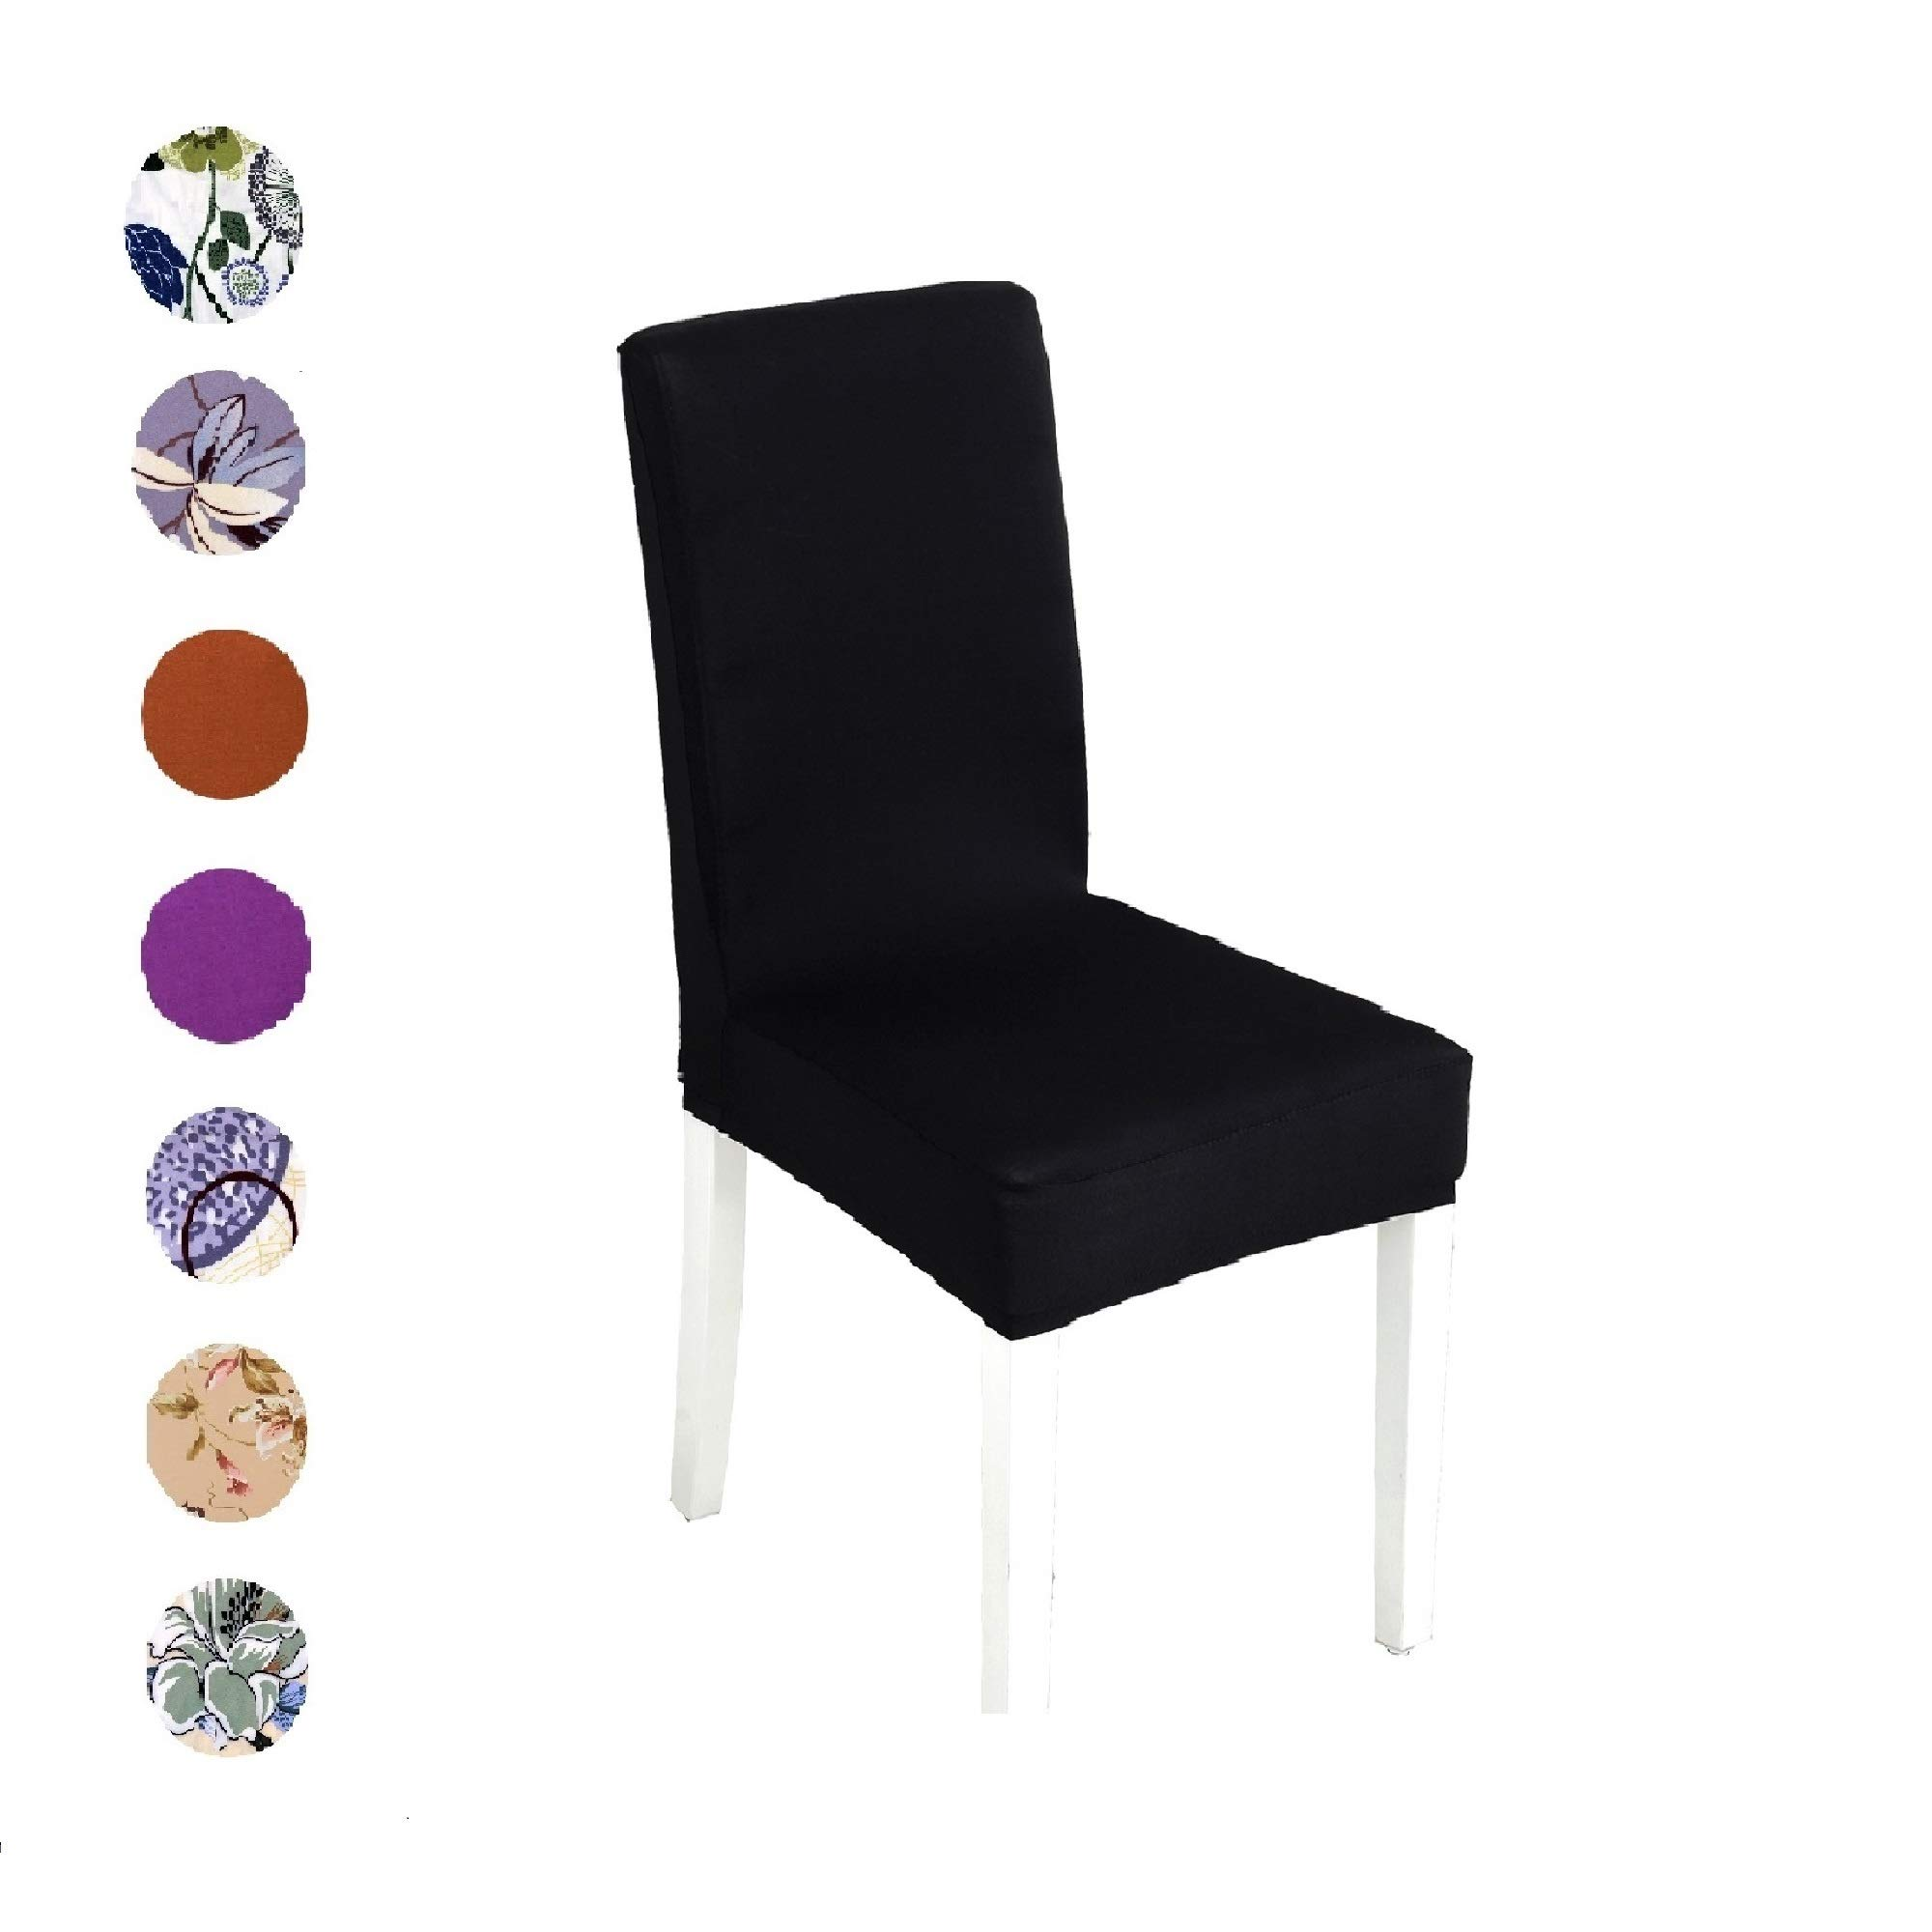 Argstar 2 Pack Stretch Chair Covers Dining Room Black Removable Protector